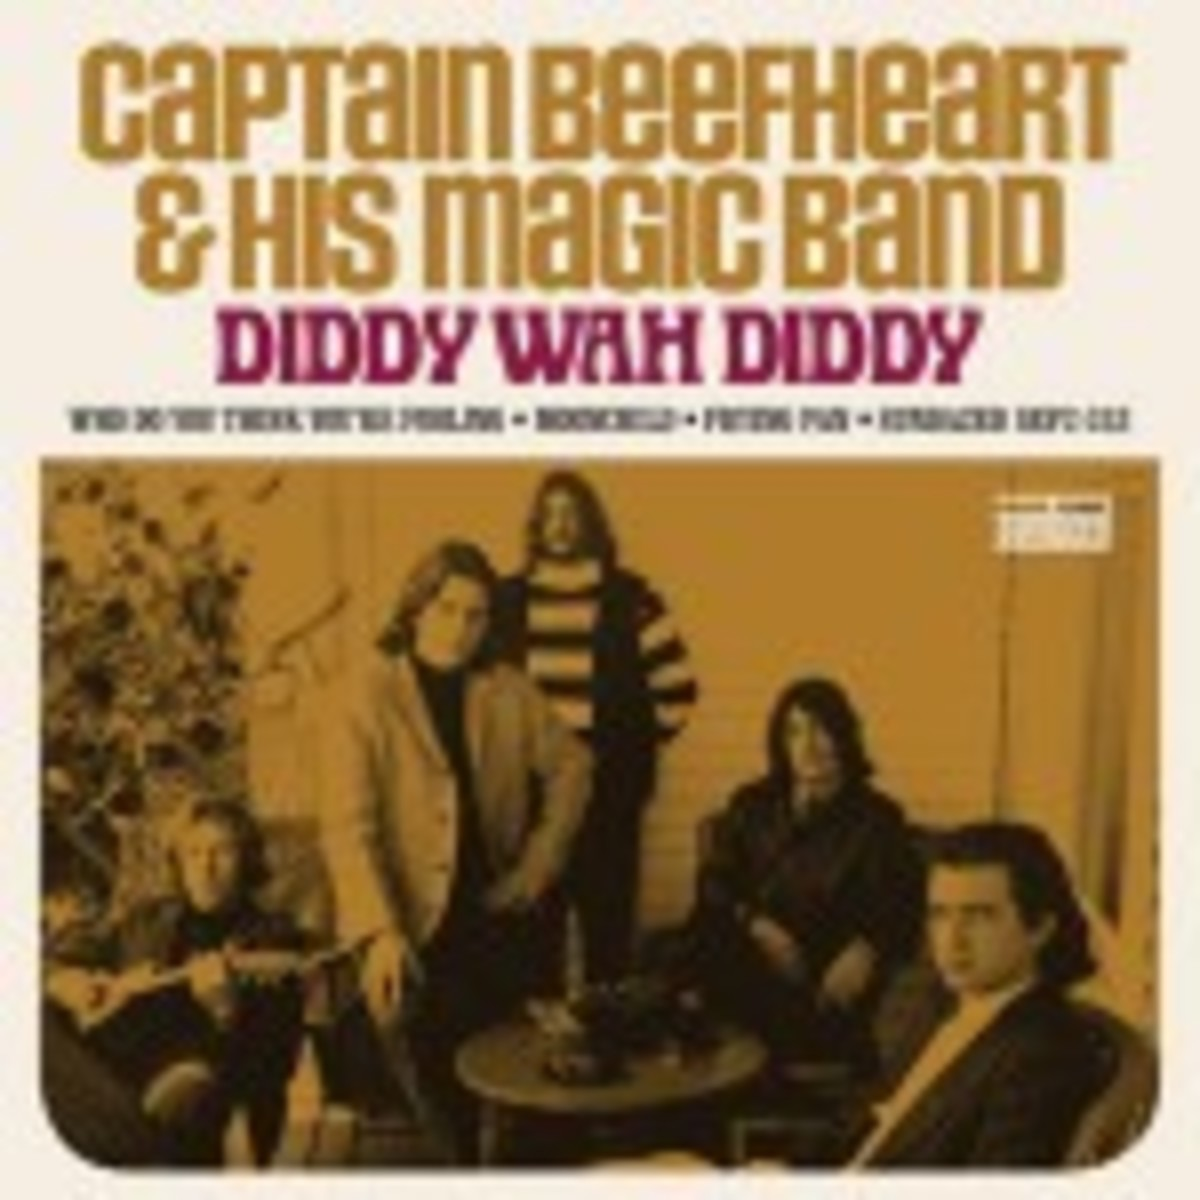 Captain Beefheart single for Record Store Day